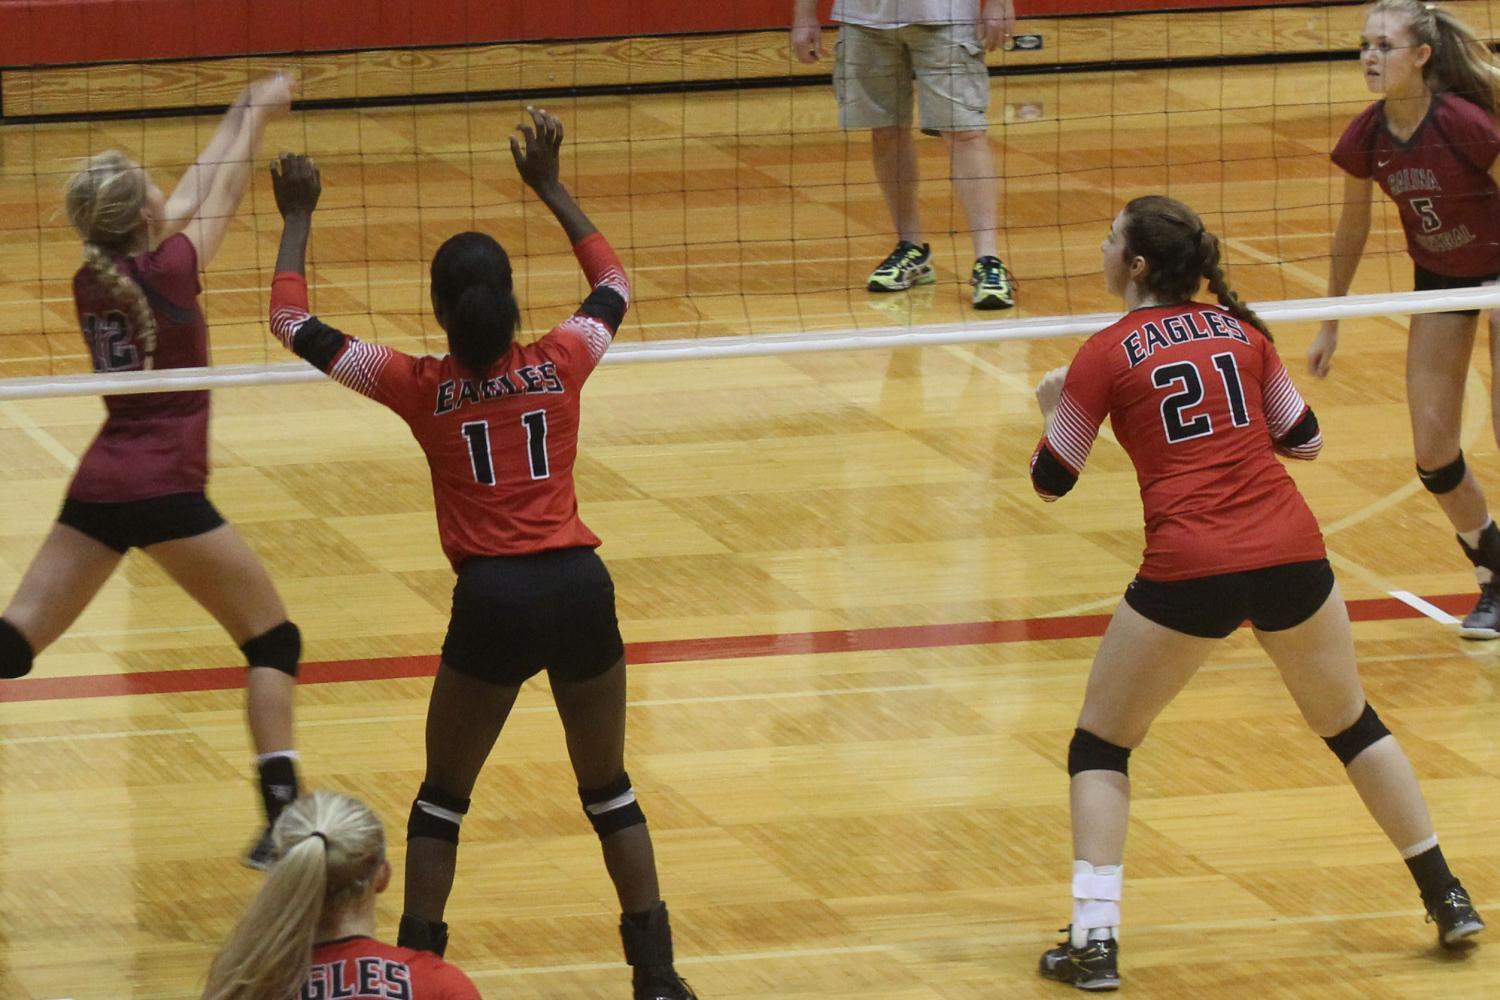 Seniors Autumn Hanna and Julianna Ledbetter play in one of last years volleyball matches.